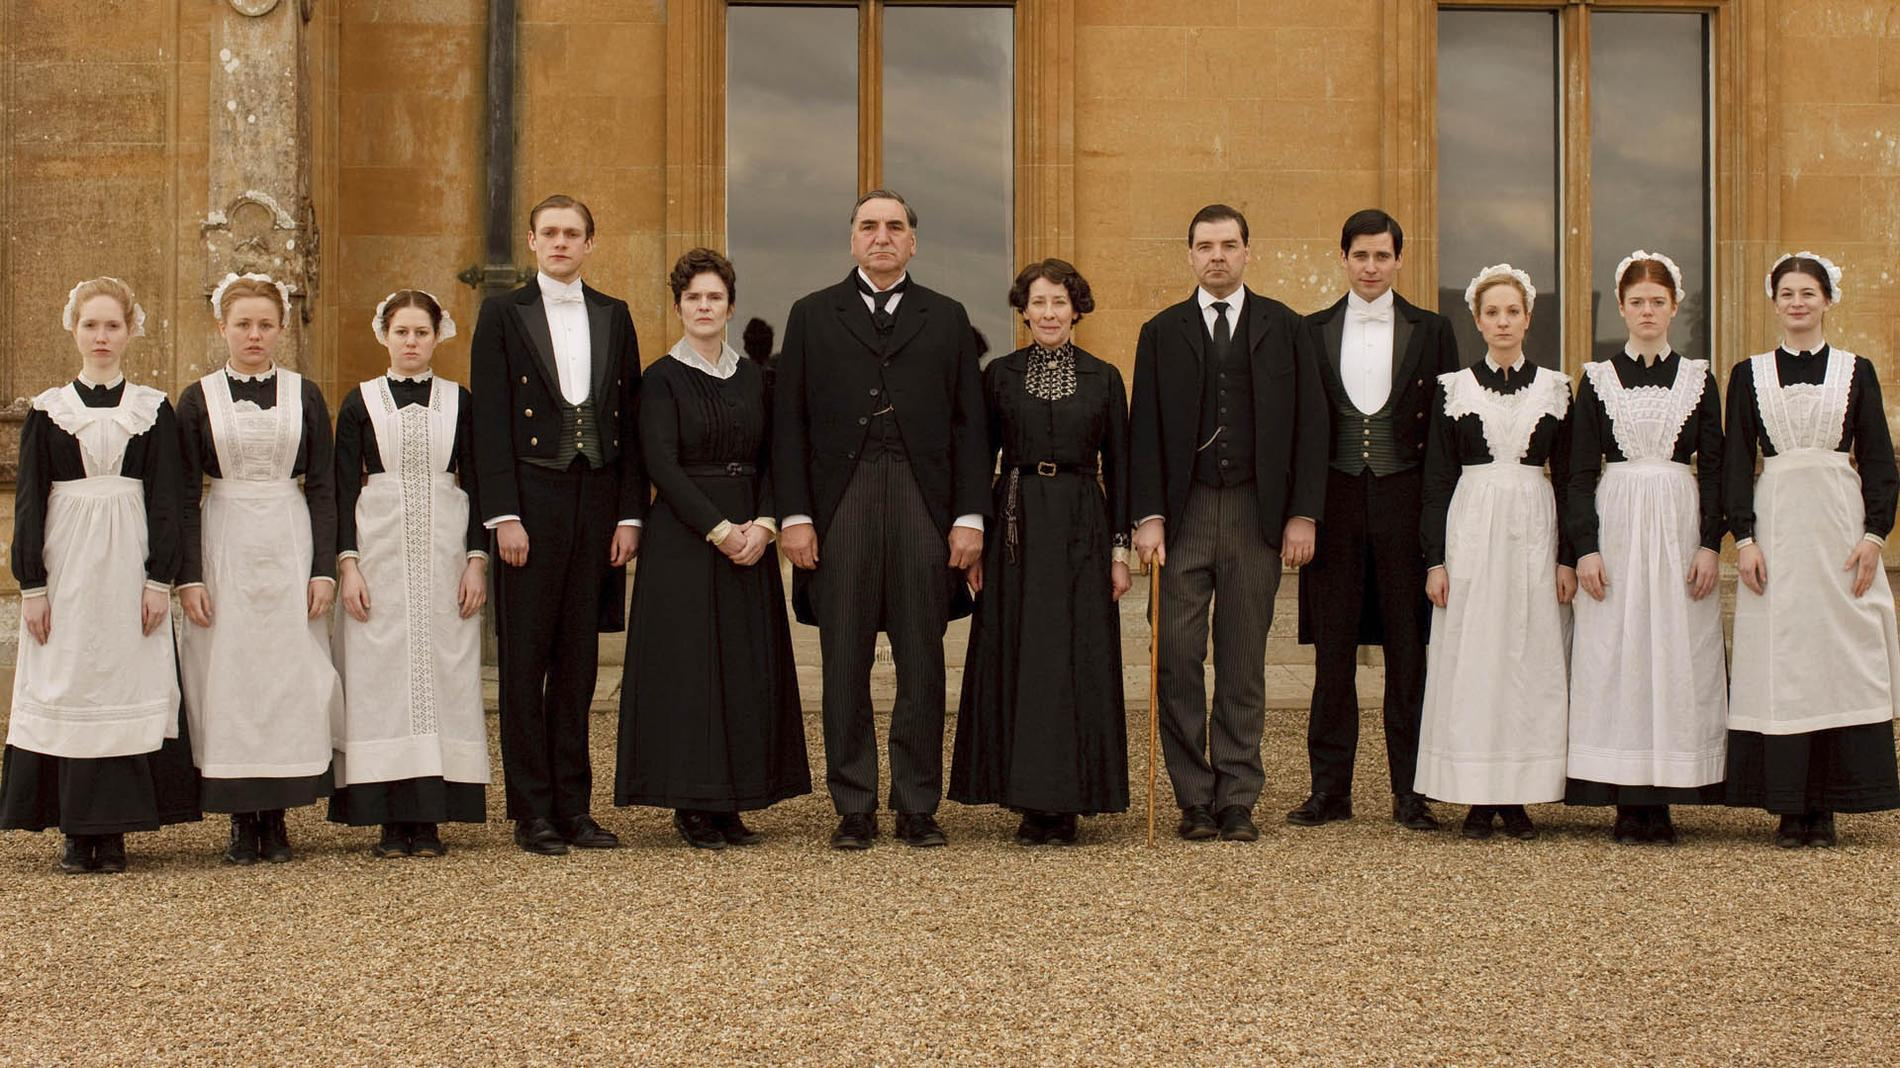 Recevoir fa on downton abbey nous la vie de ch teau - Chateau downton abbey ...